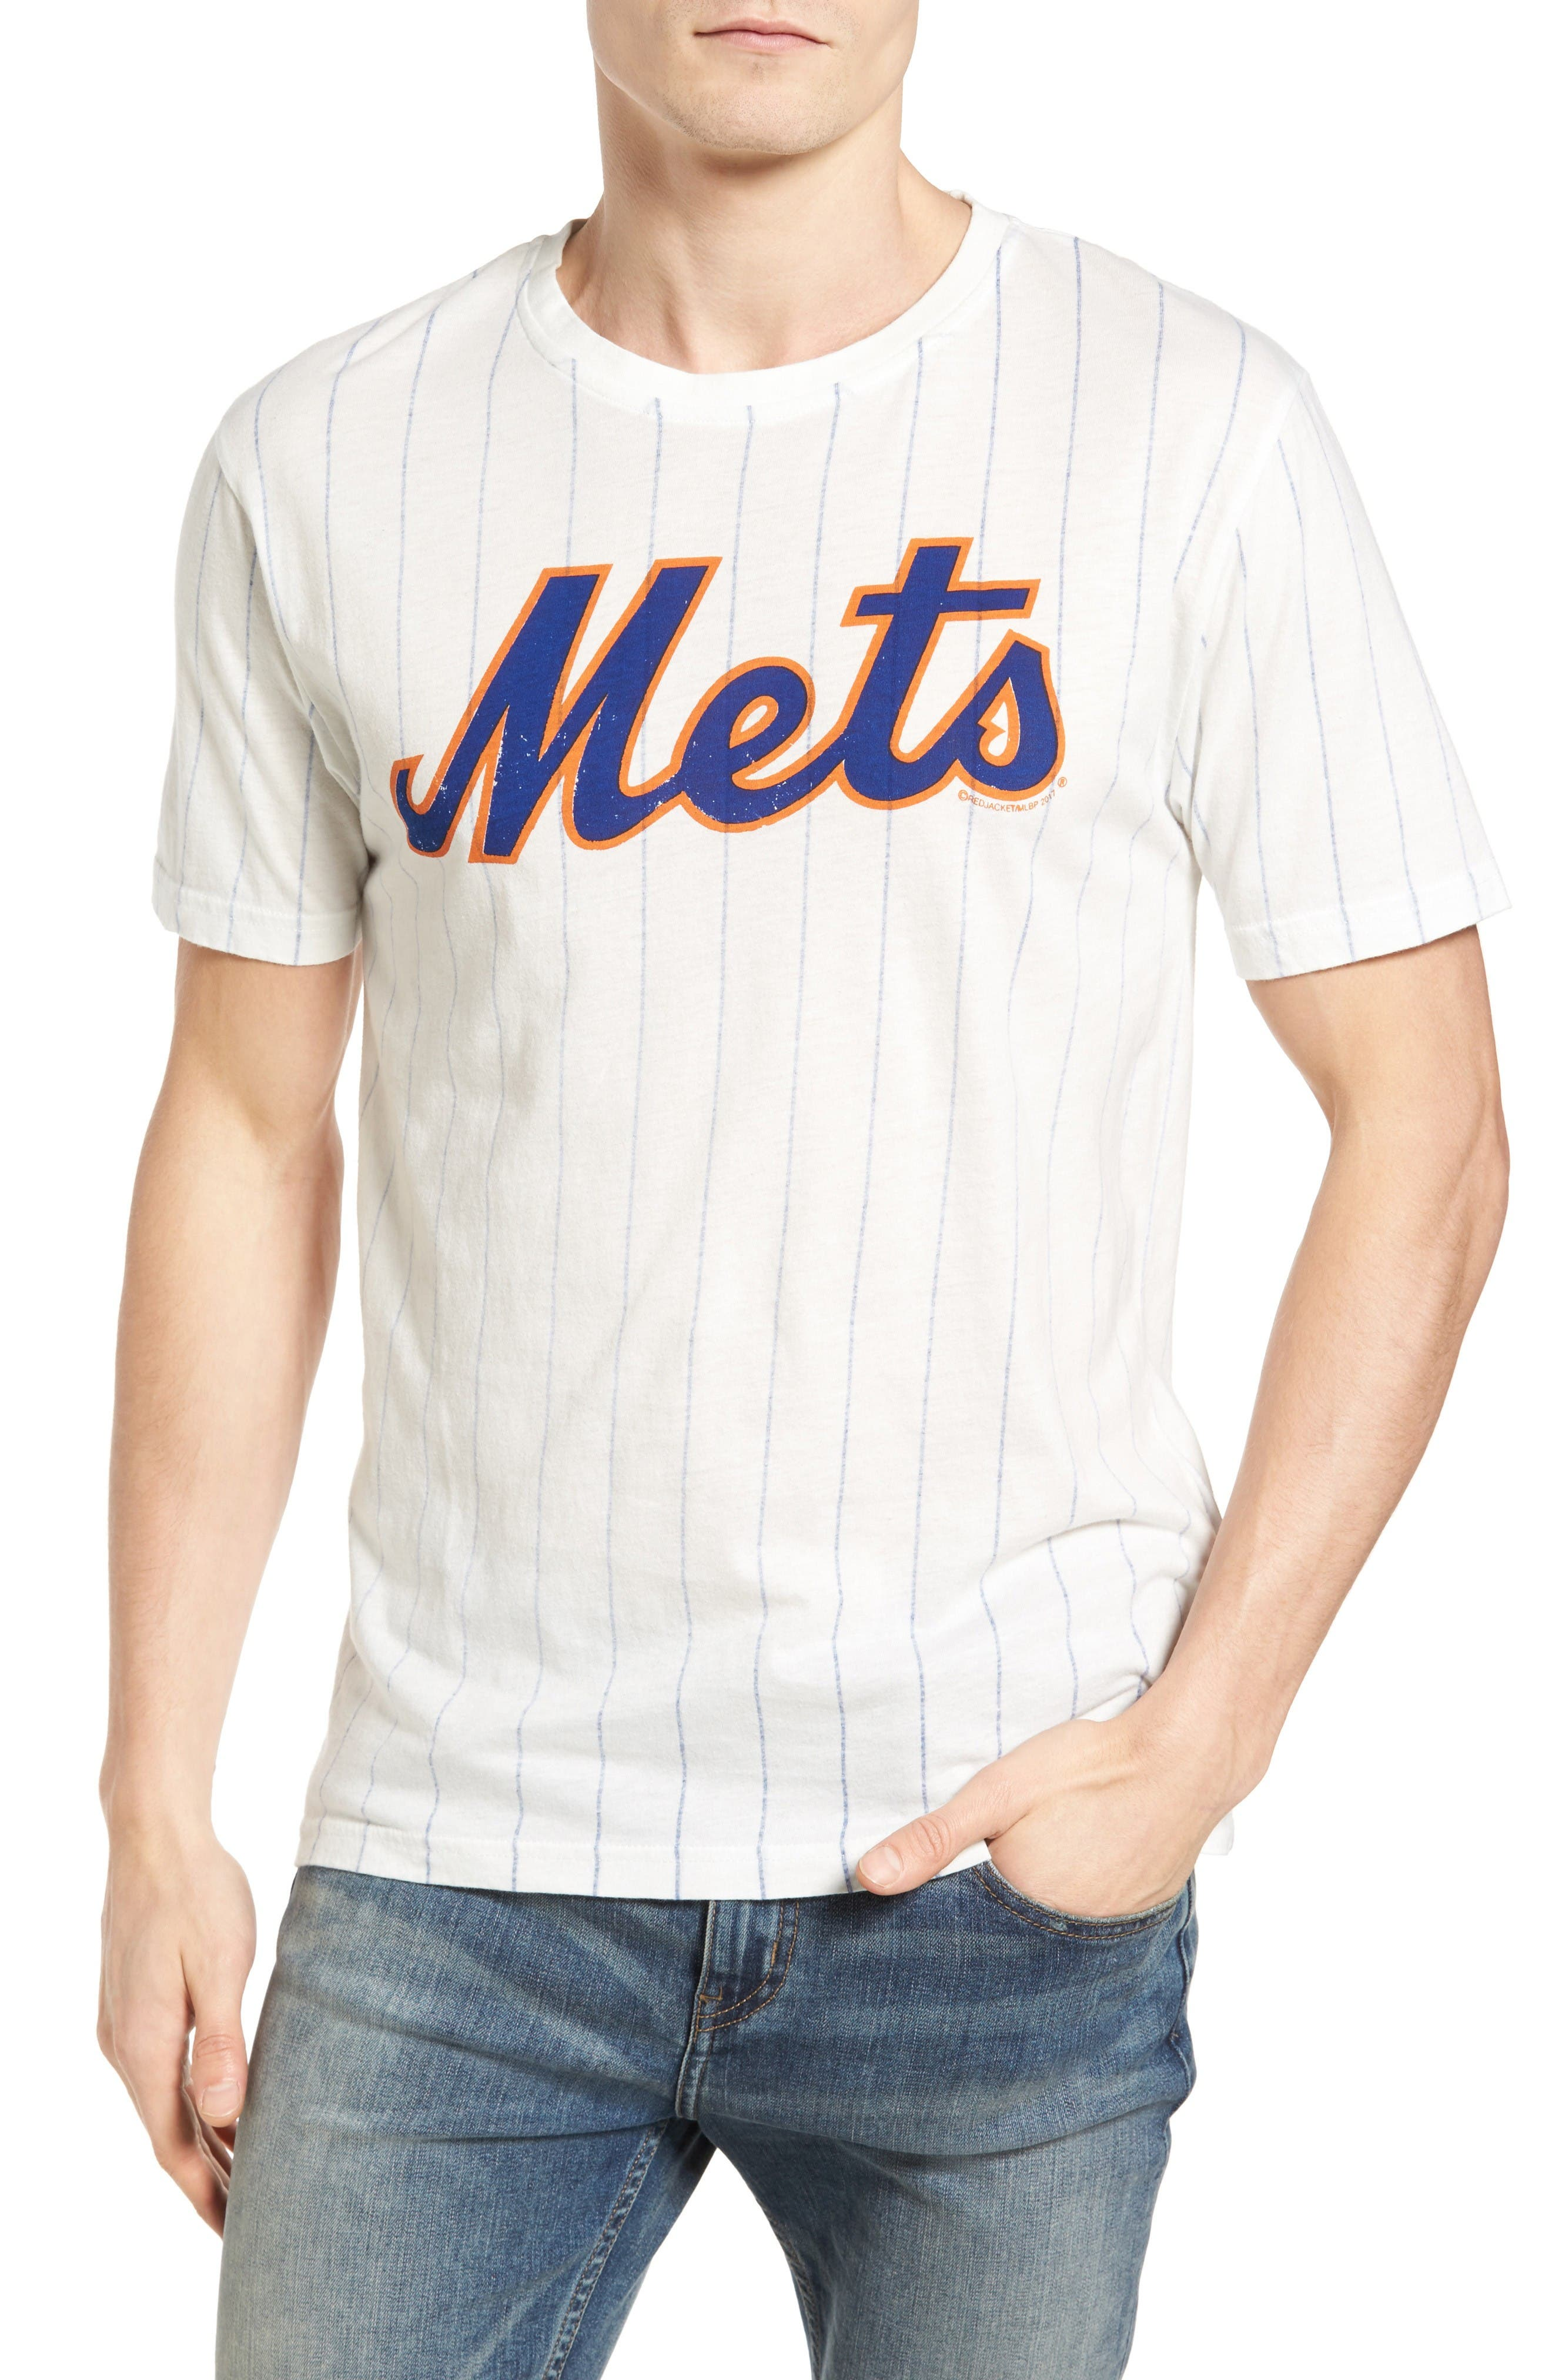 Main Image - American Needle Brass Tack New York Mets T-Shirt